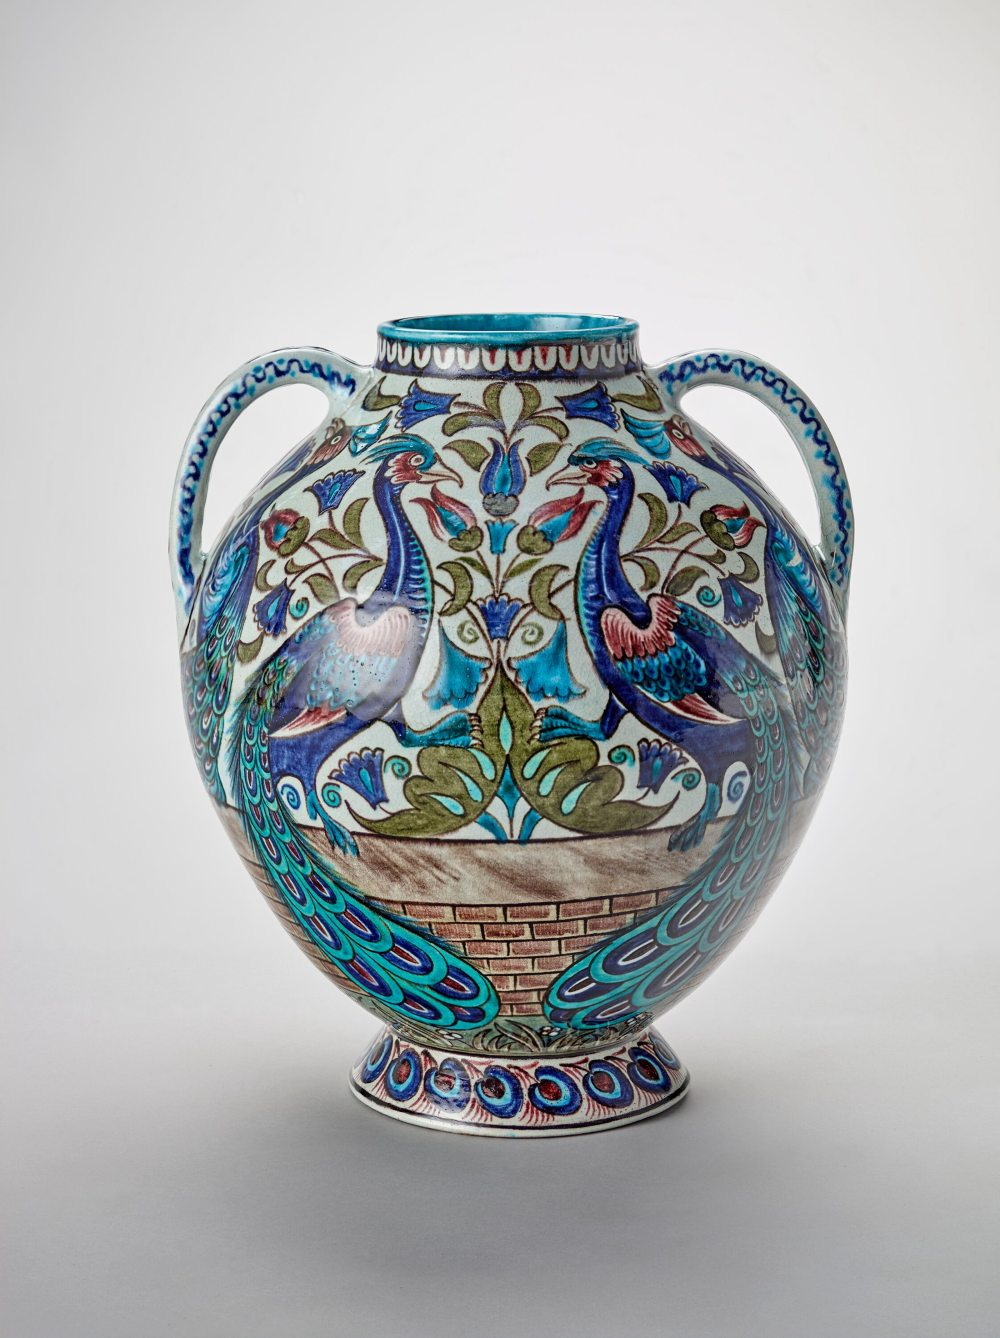 A two-handled clay vase glazed with an elaborate pattern with two peacocks in blue, cerulean, olive green and red.